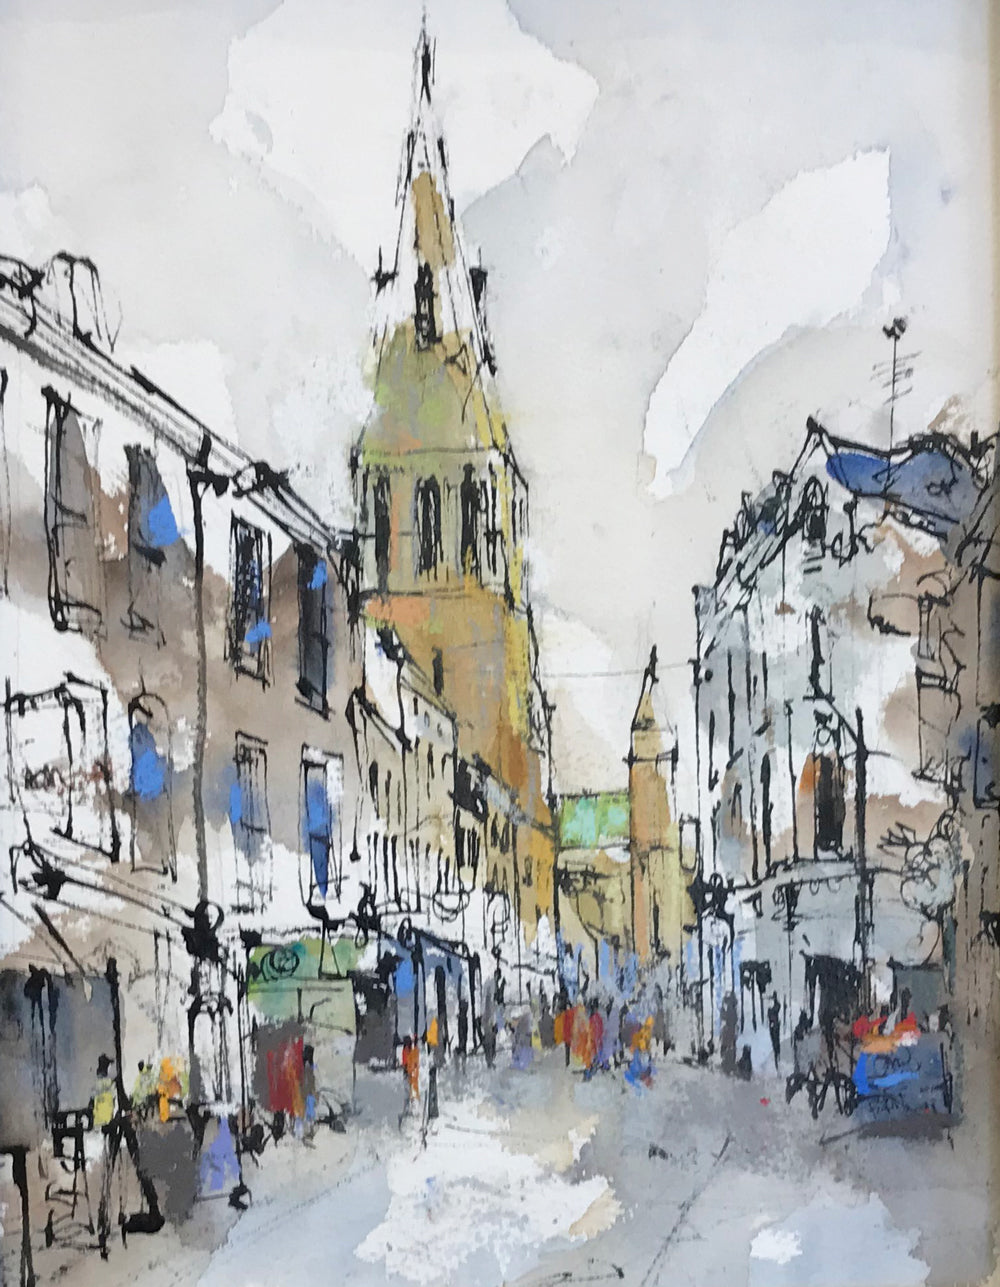 Guildhall Lane by Emma Fitzpatrick